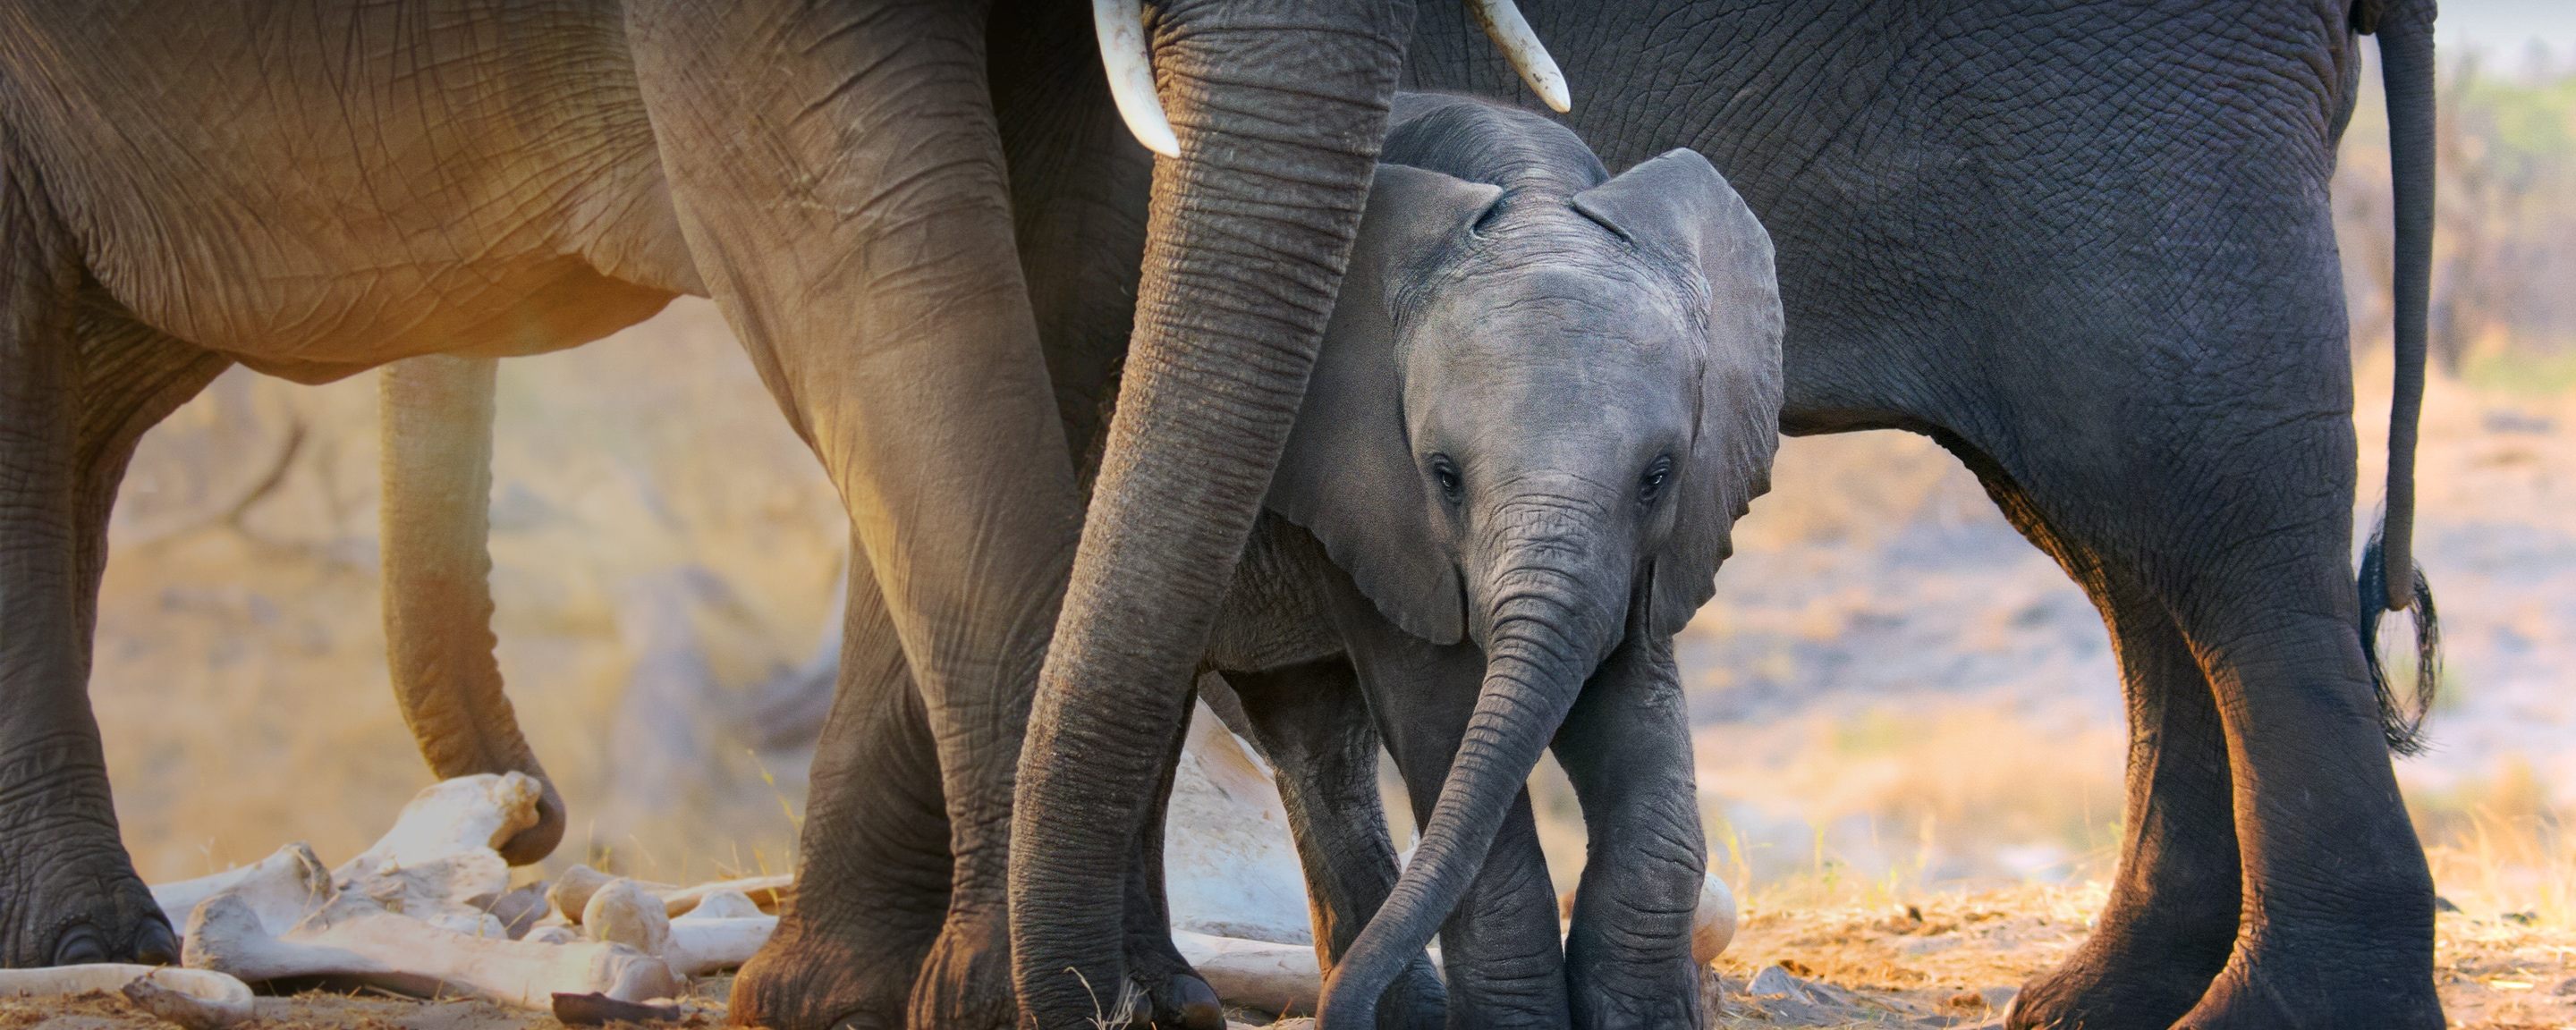 Disneynature's Elephant narrated by Meghan, the Duchess of Sussex